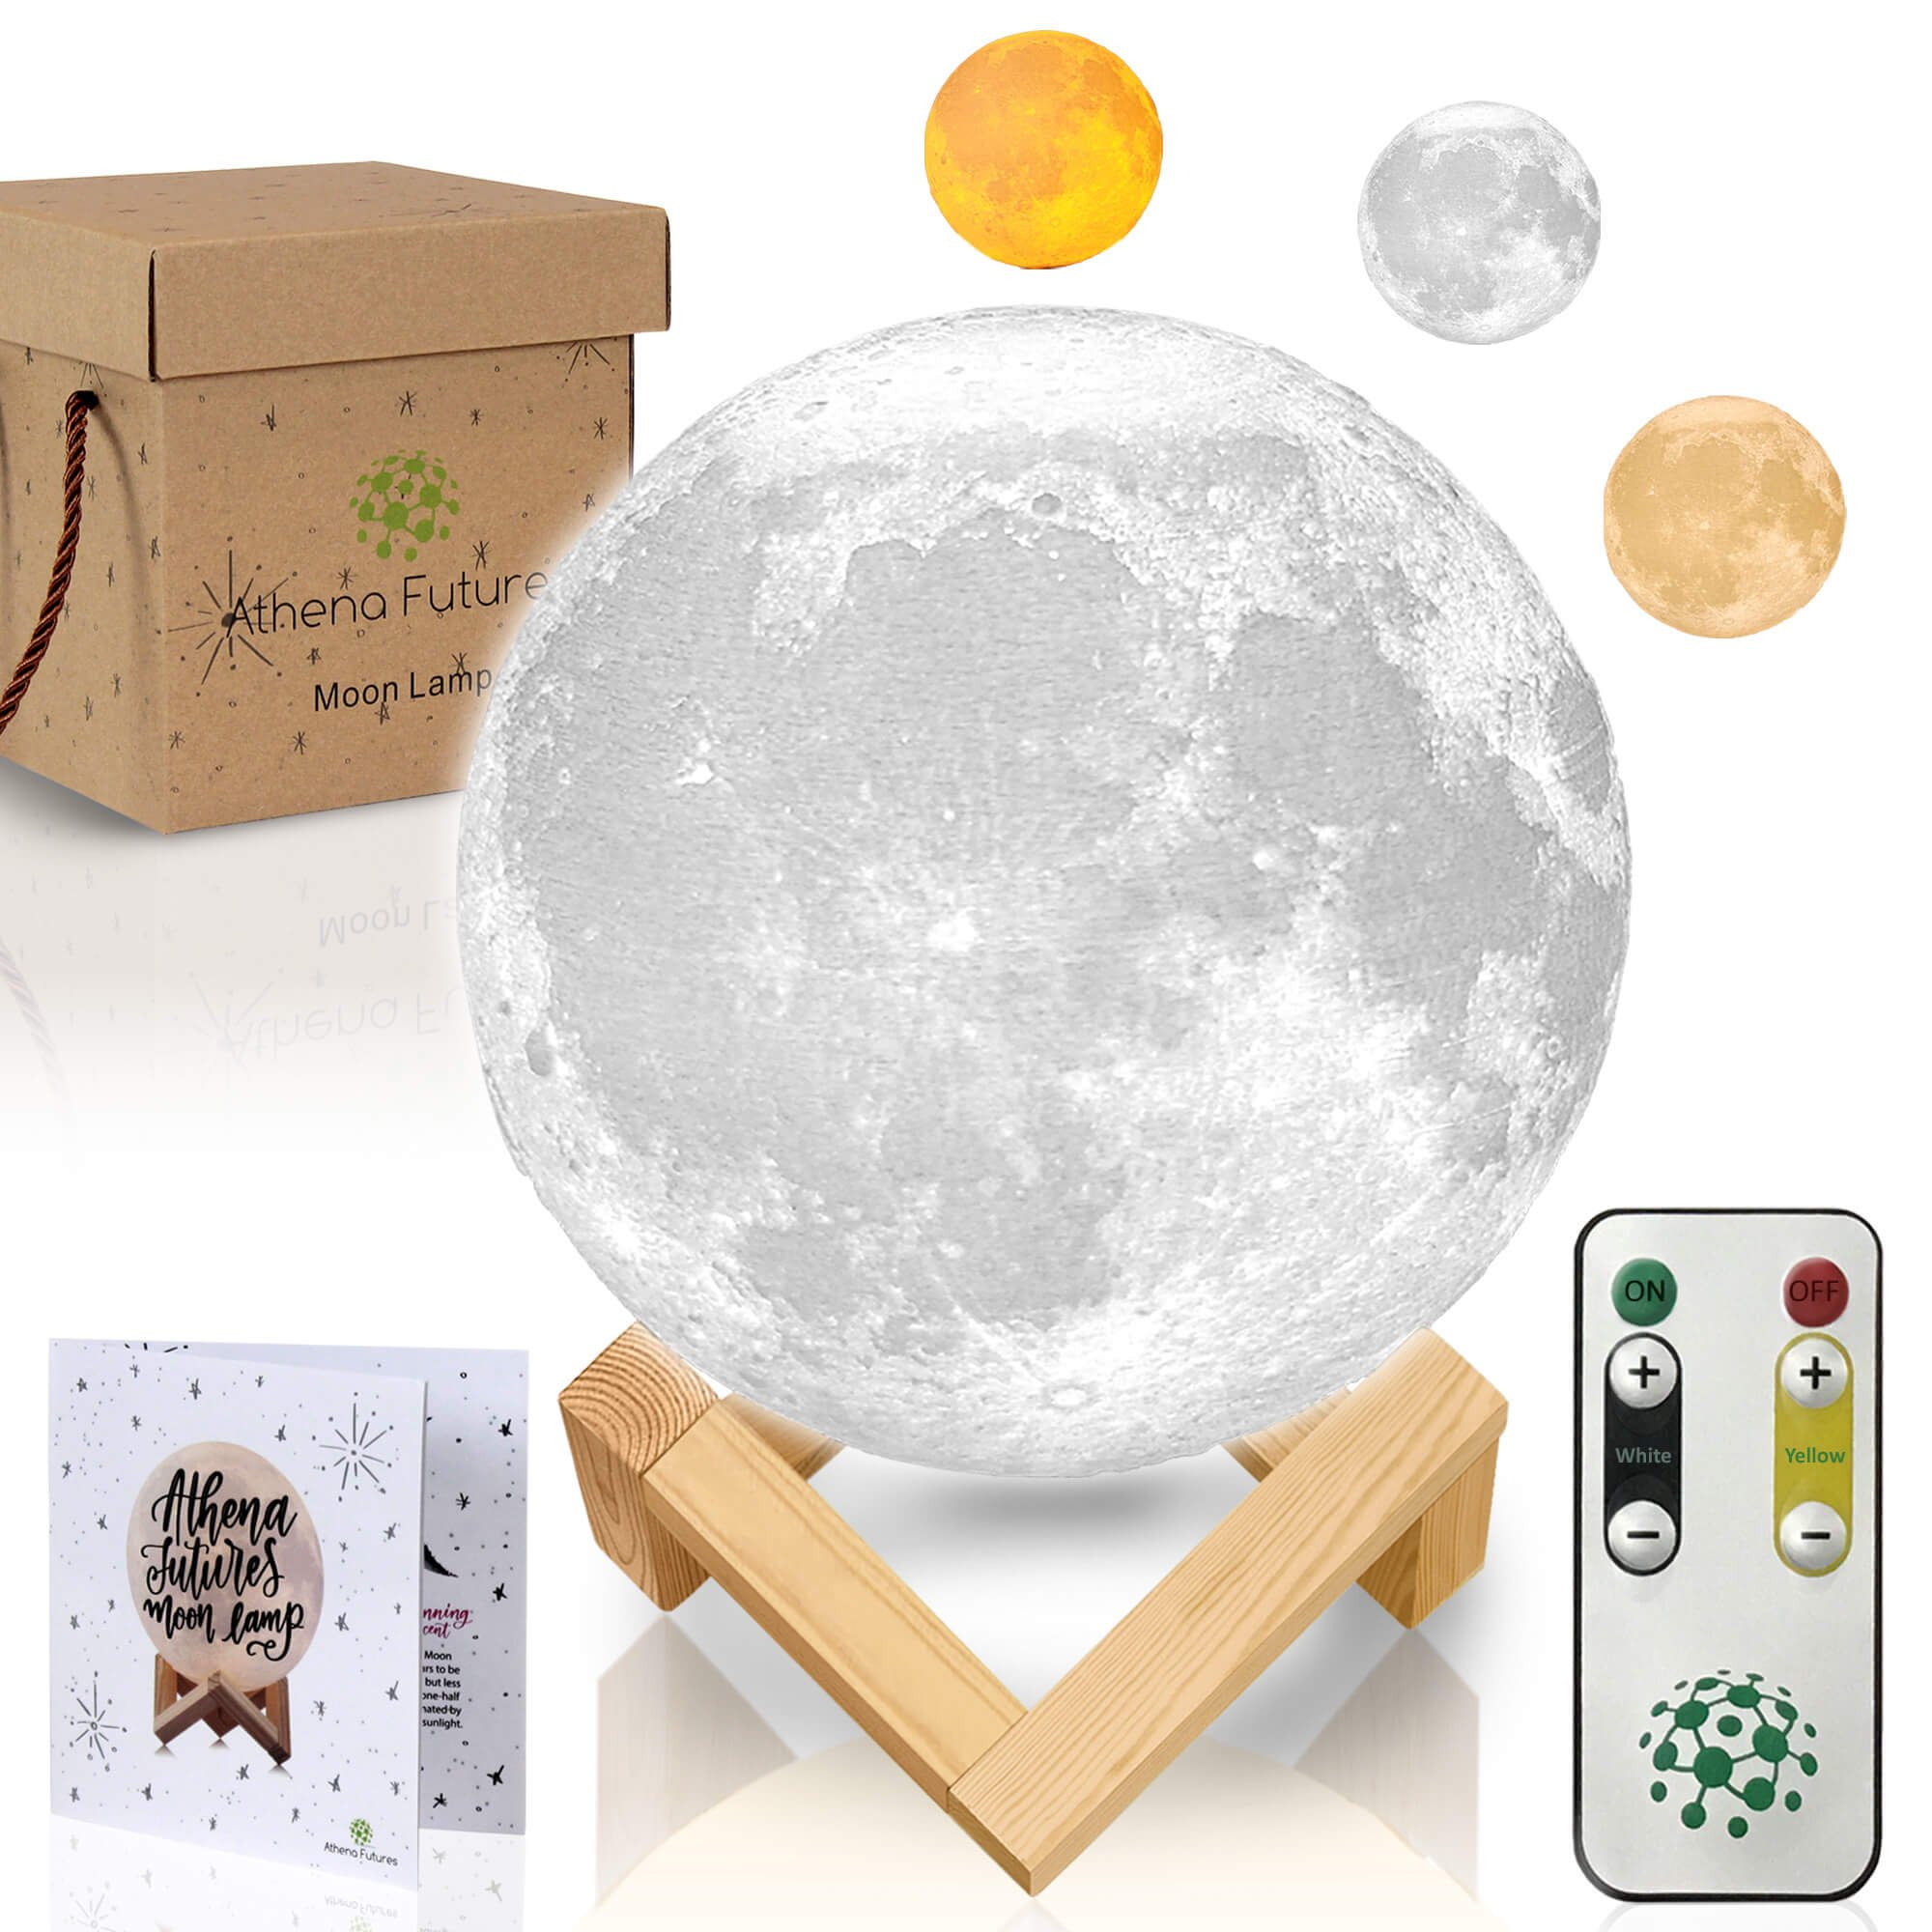 Moon Lamp Moon Light 3D Moon Lamp - [USA Seller] [Upgrade] 3 Color Moon Night Light with Stand - Mood Lamp Book, Globe, Cool Lamp, 5.9 in, USB Charging, with Wooden Stand, Box, Kids, Moonlight LED by Athena Futures